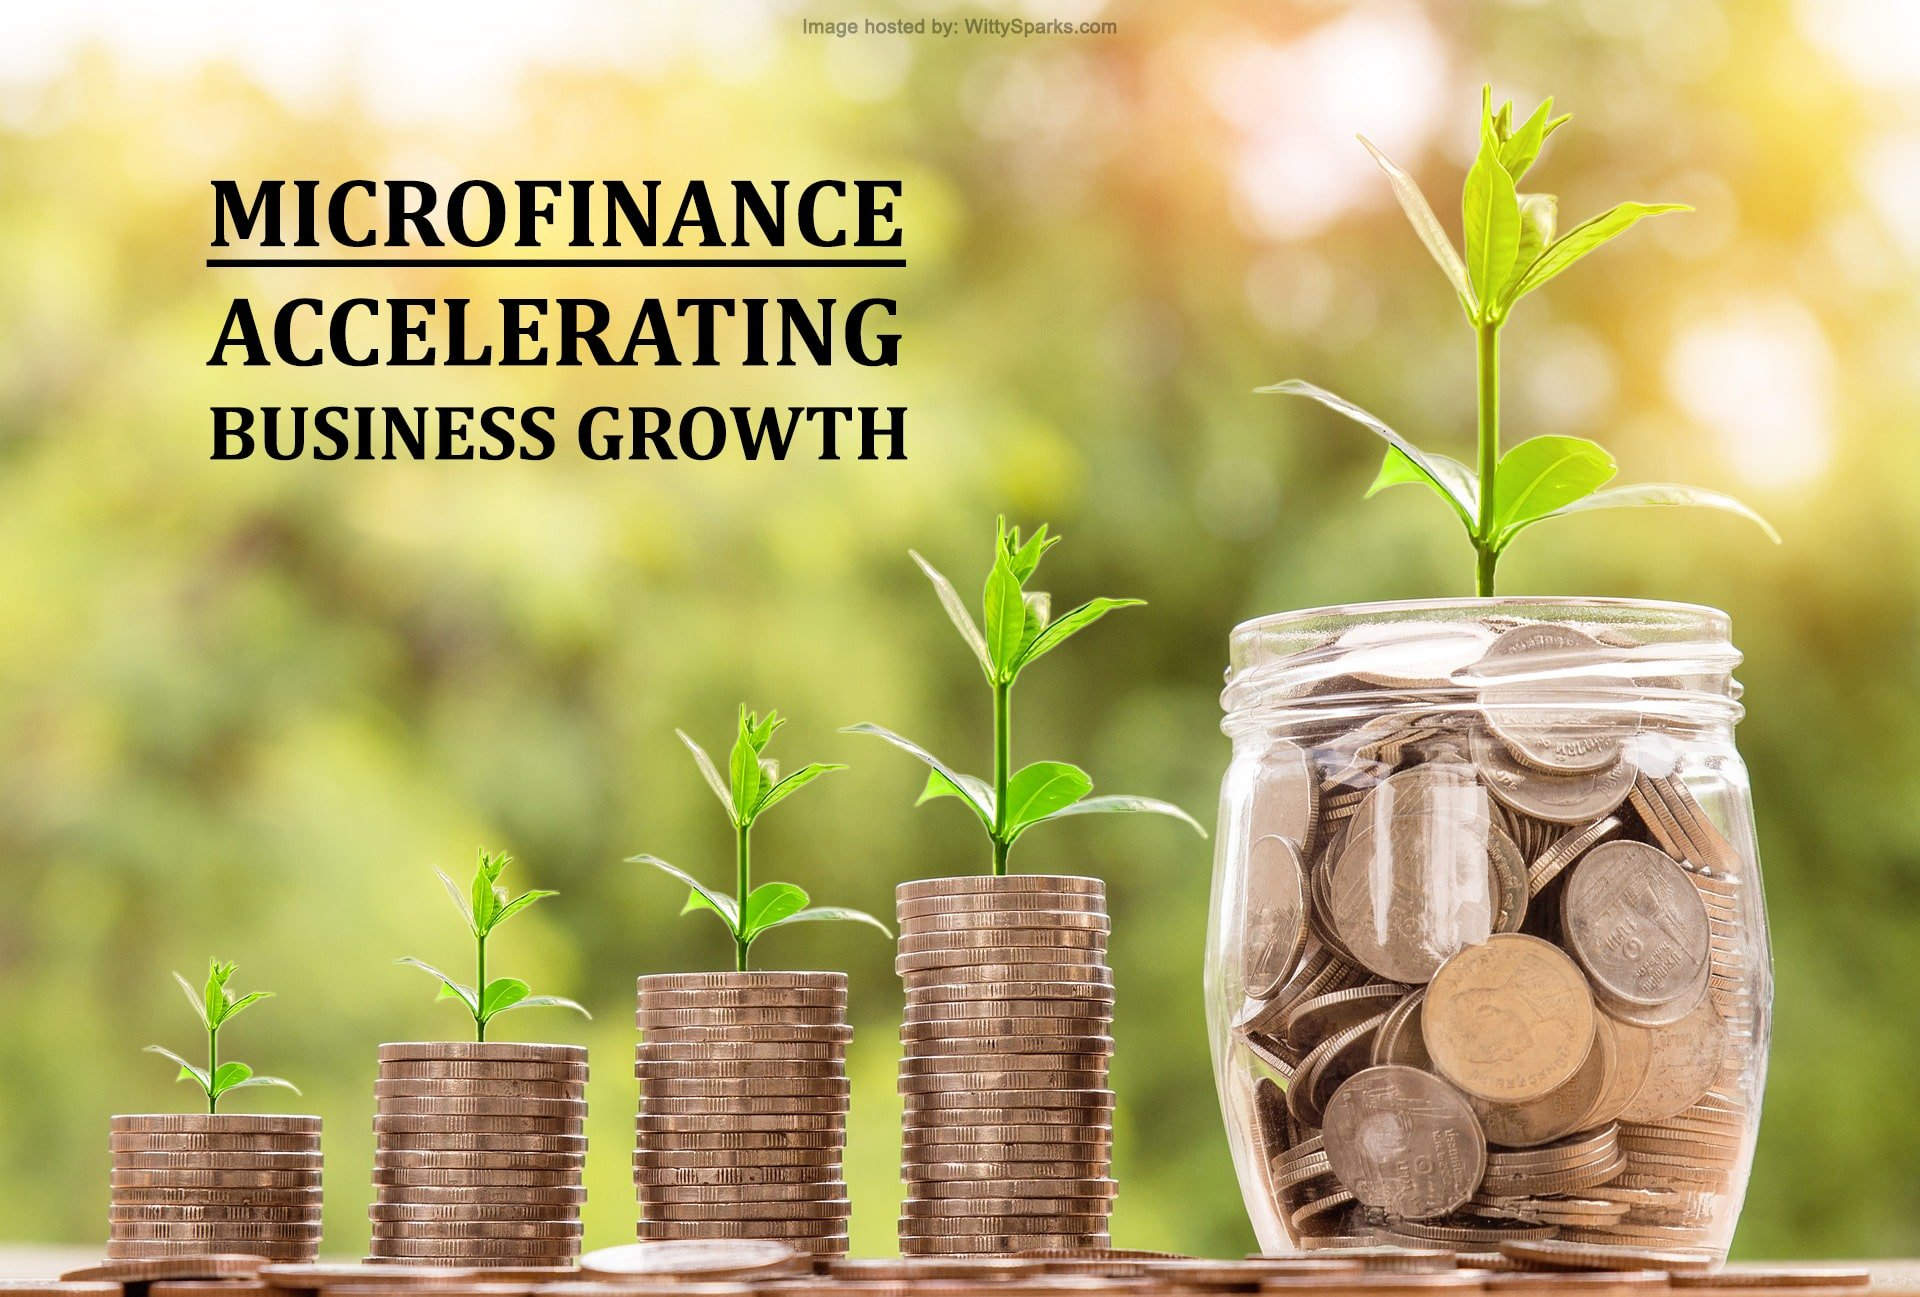 Microfinance: Accelerating Business Growth